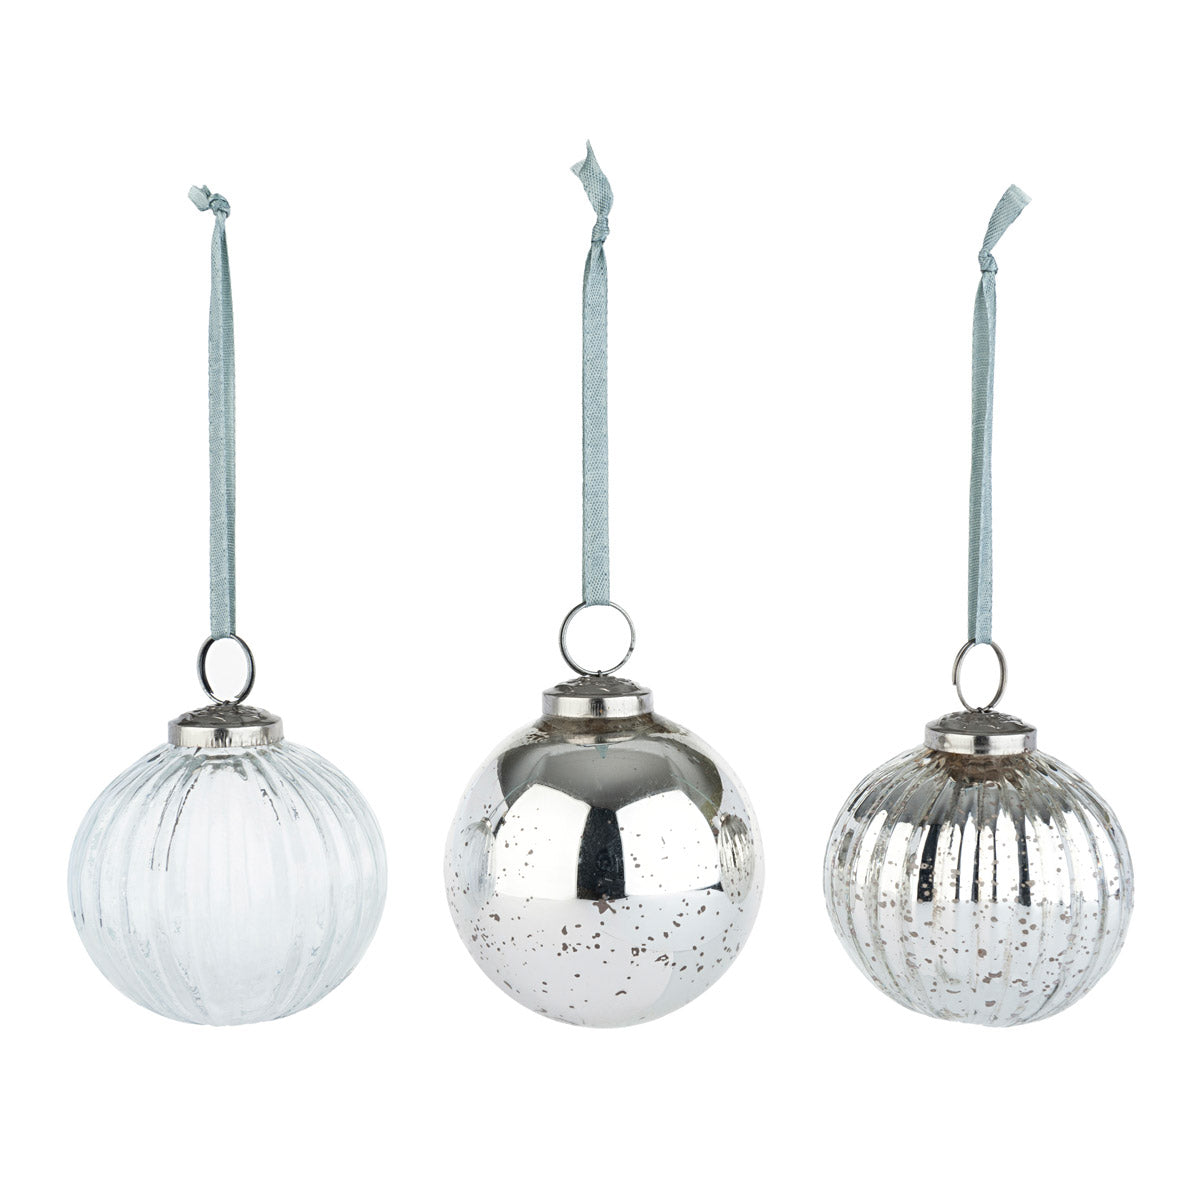 Circular Glass Baubles - Set of 3